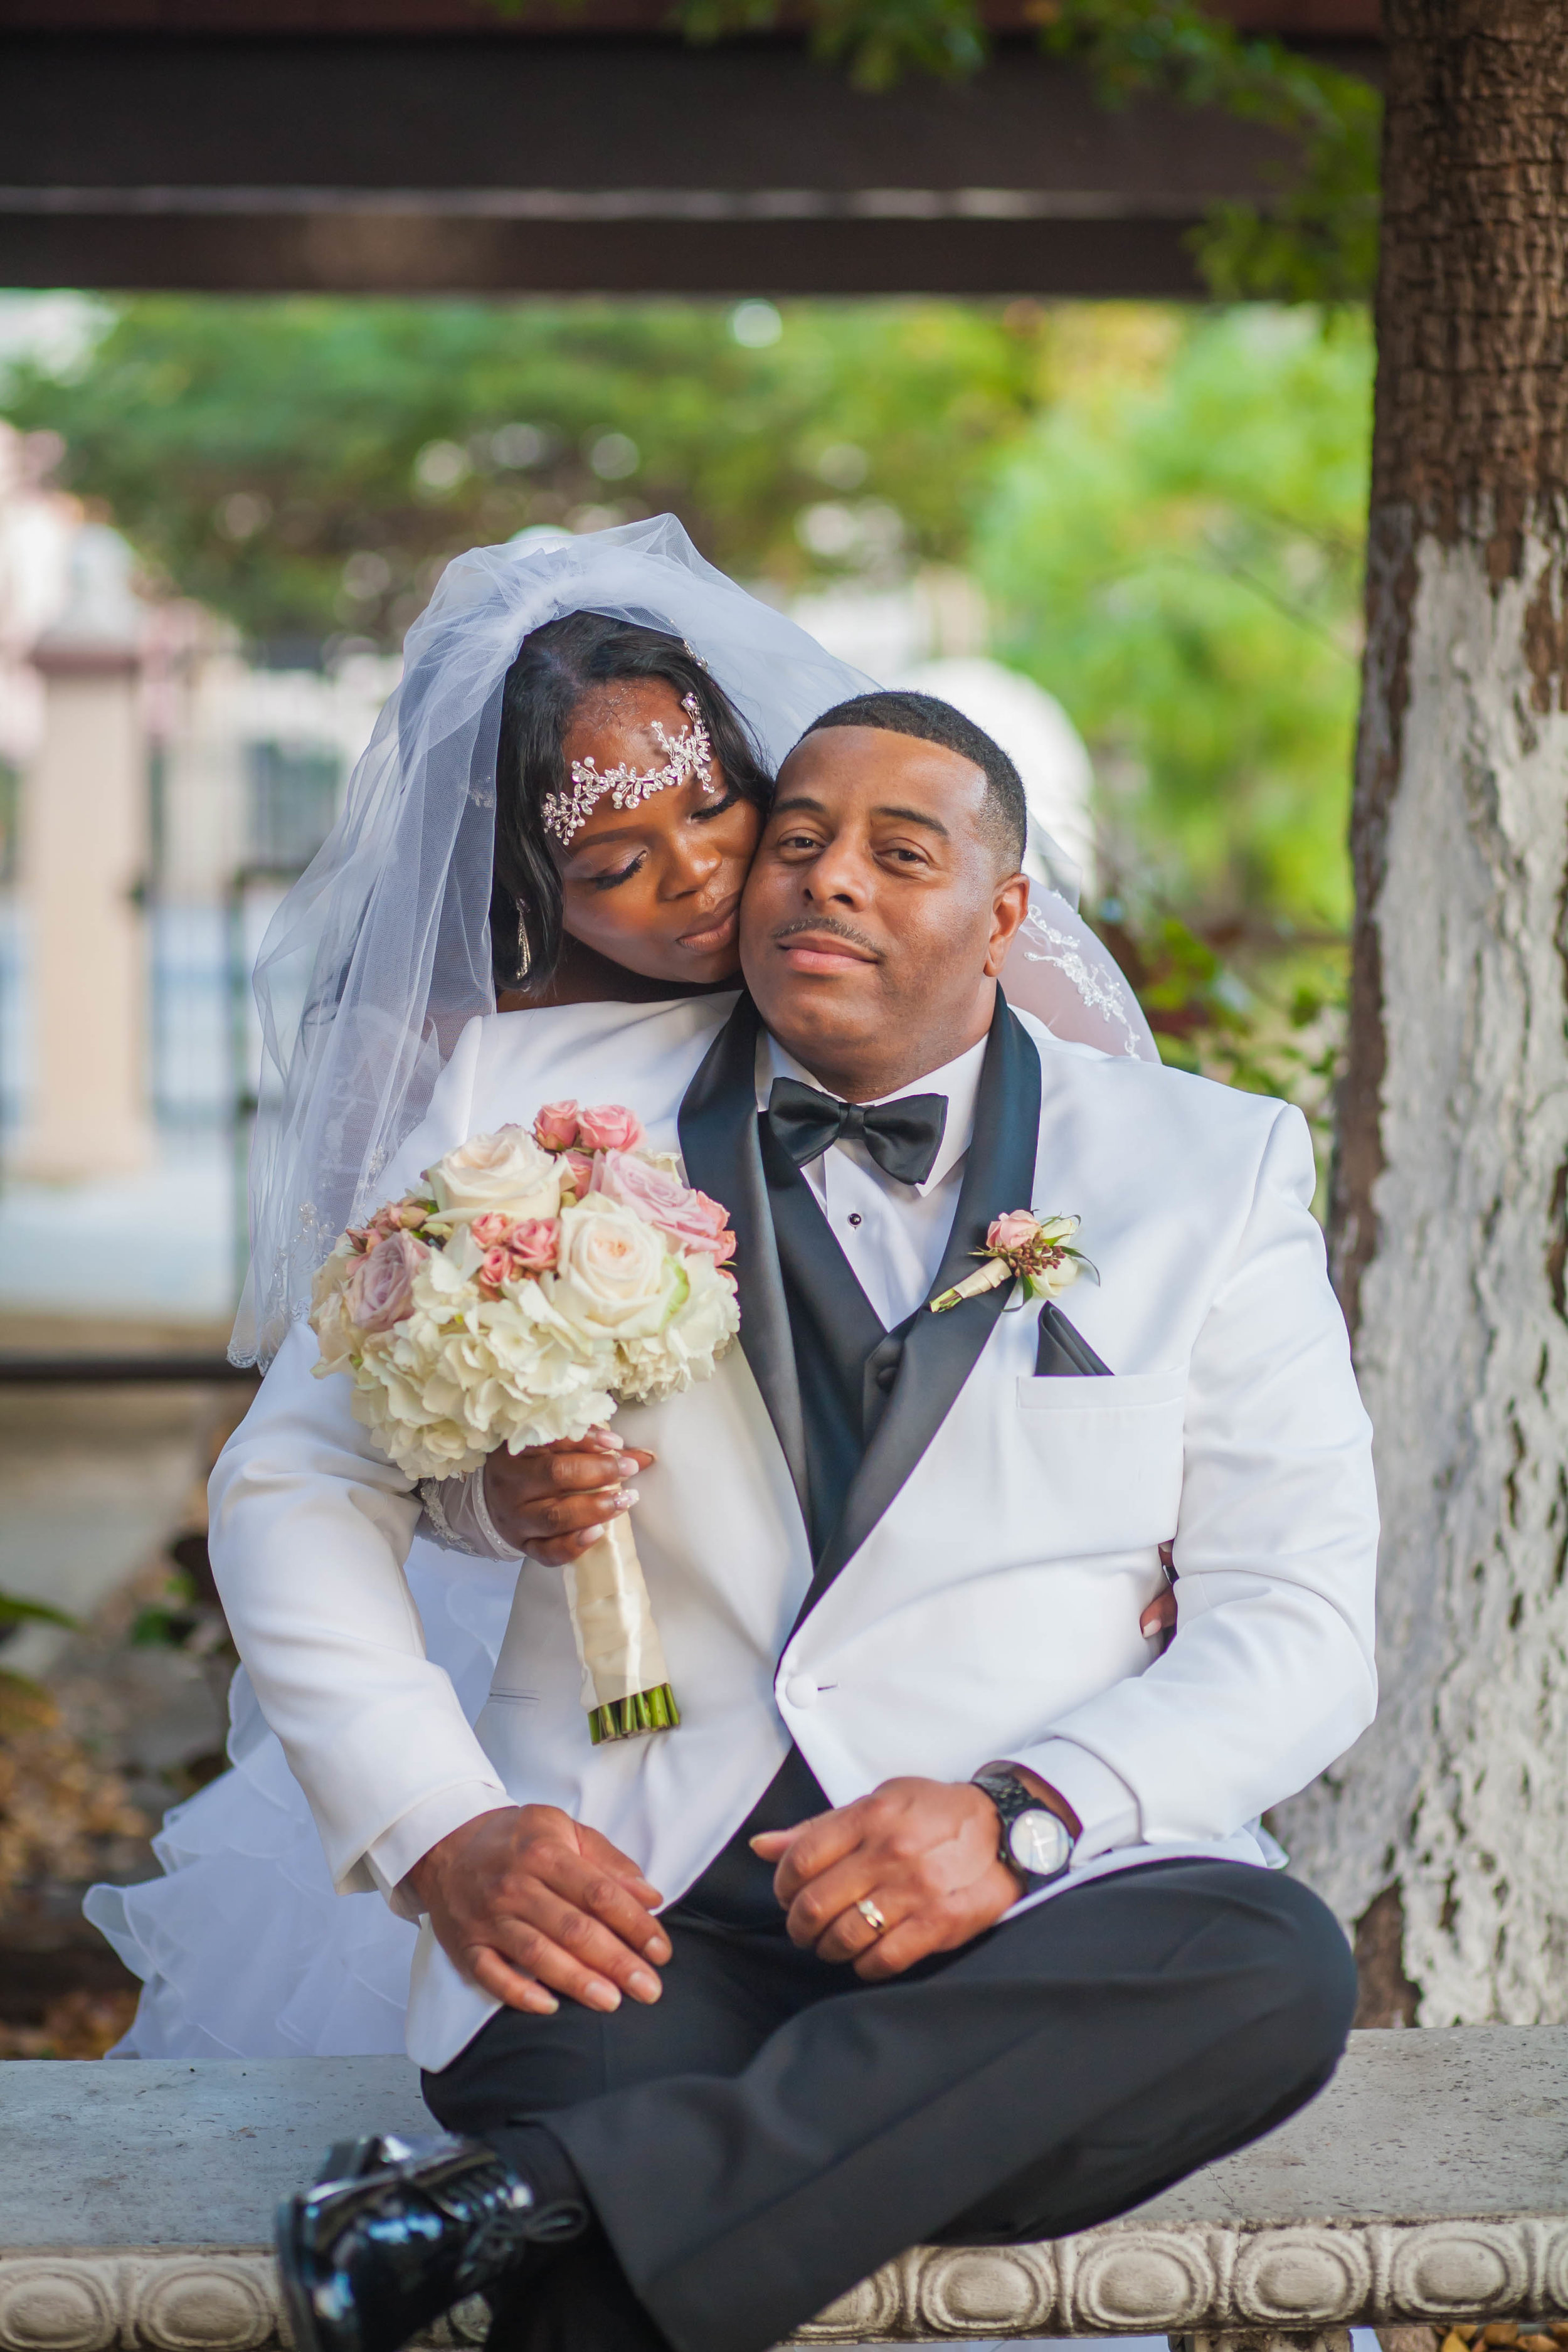 """LaVenia Cook- Miami, FL   """"LOVE ISABEL!!!!!! Isabel was a pleasure to work with from day 1! She made the process extremely stress free and easy during our wedding planning. Our pictures turned out absolutely stunning!!! WE HIGHLY RECOMMEND ISABEL FOR YOUR PHOTOGRAPHY NEEDS! You will not be disappointed."""""""